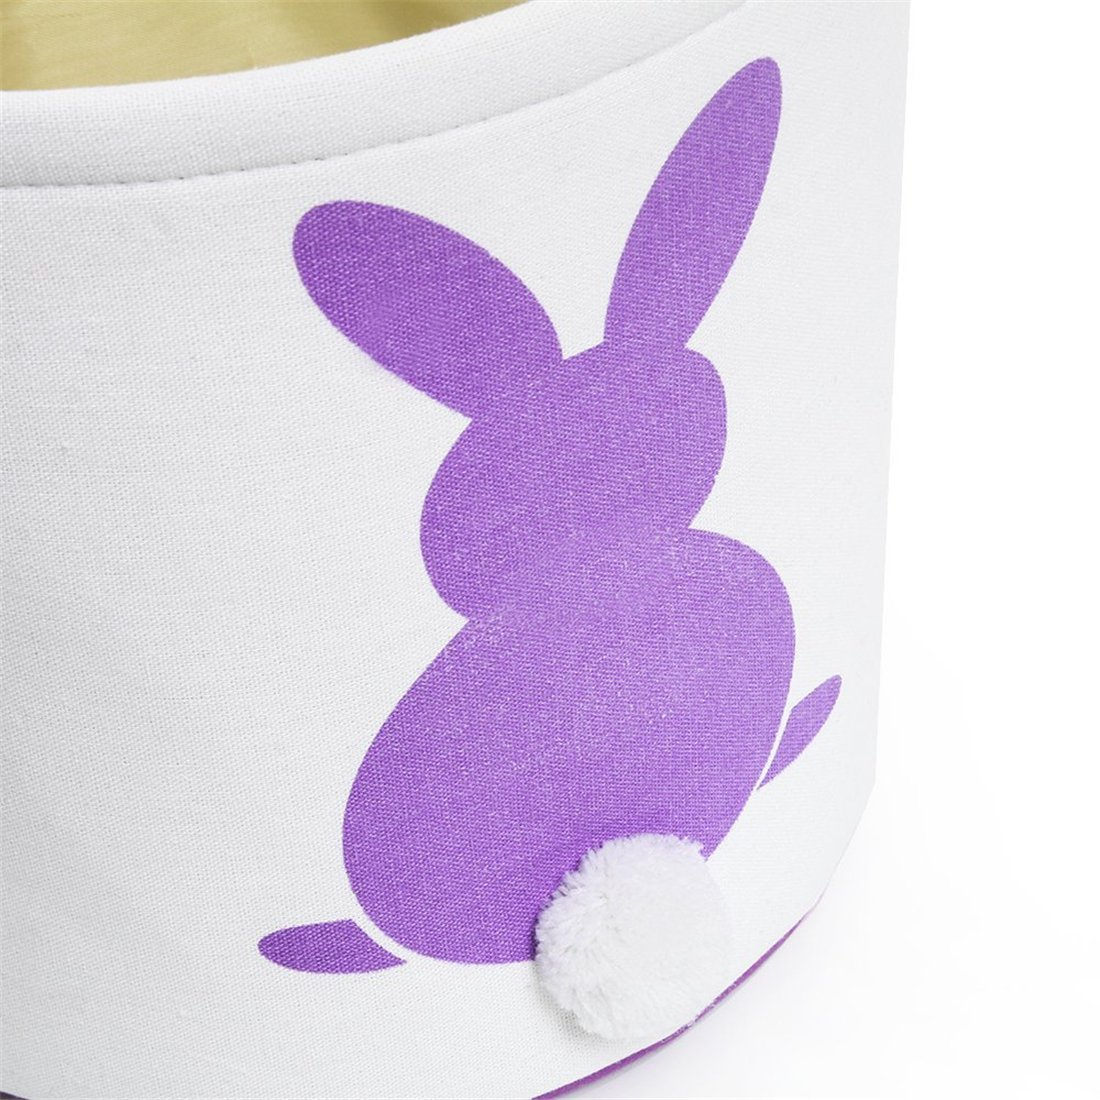 GWELL 4 PCS, Easter Bunny Basket, Foldable Gift Basket Bucket for Kids, DIY Gifts, Egg Hunt, Candies, Goodies, Canvas Bag with Bunny Tail Pompom